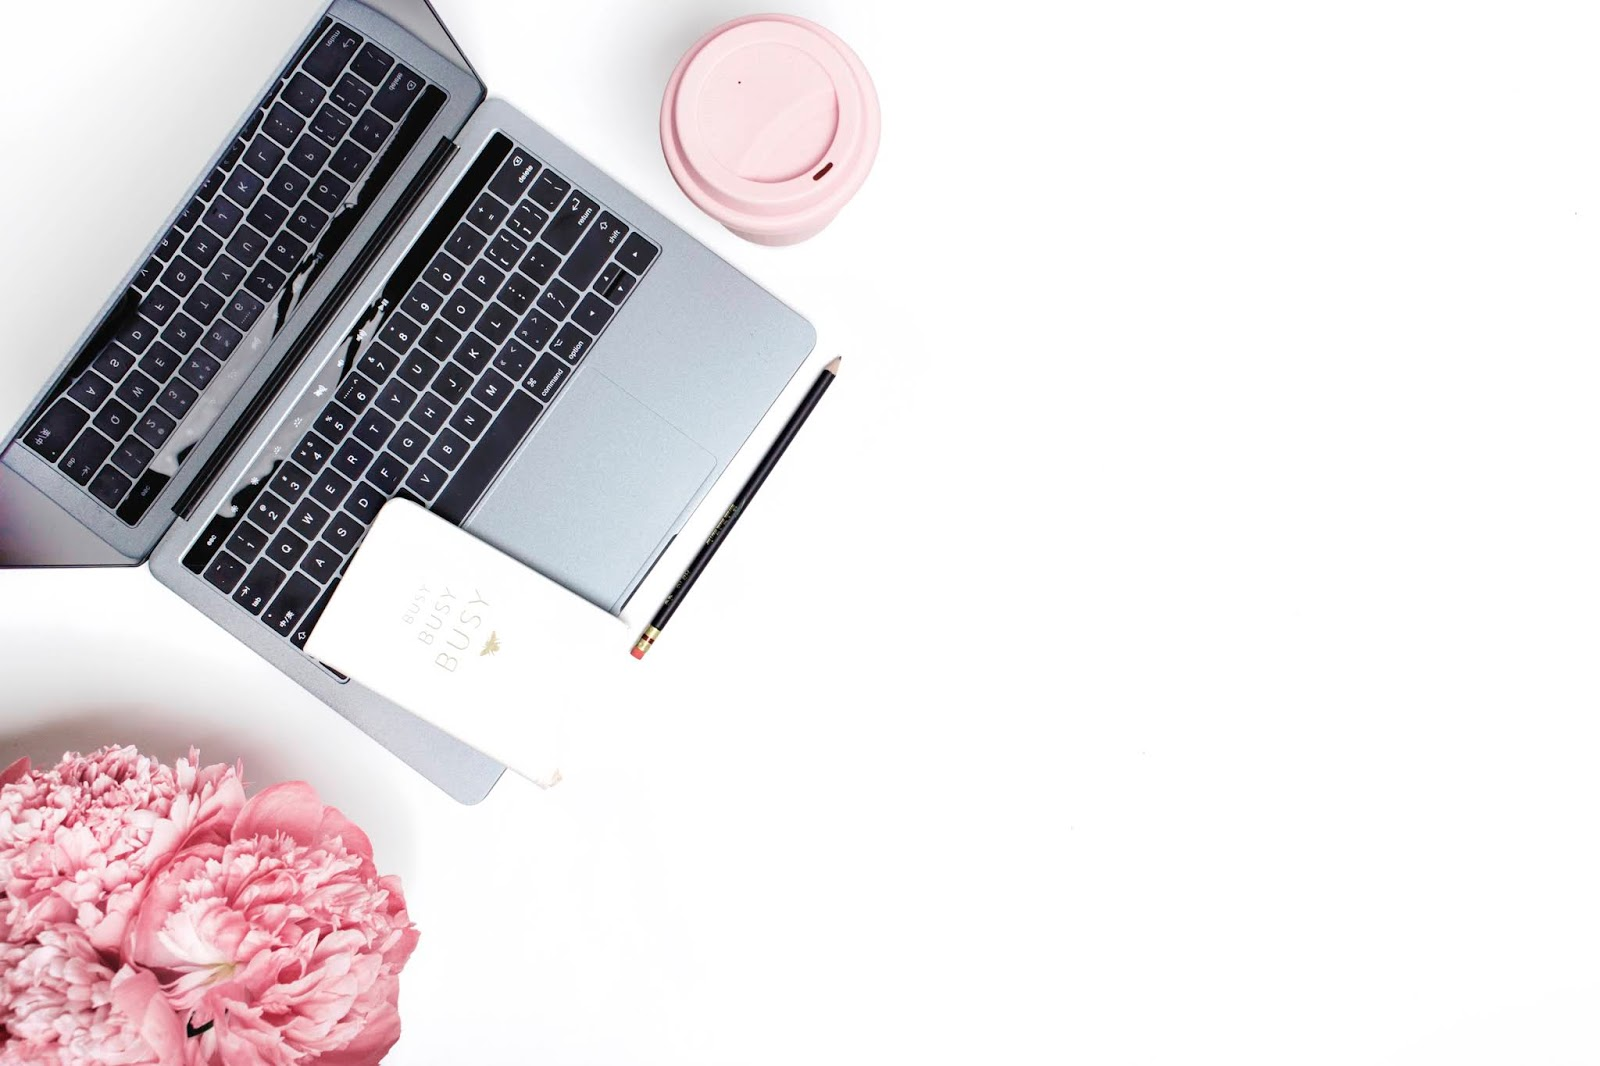 Stock Photo from Ivorymix - Flatlay of a laptop open with a busy planner sitting on it and pink flowers to the left